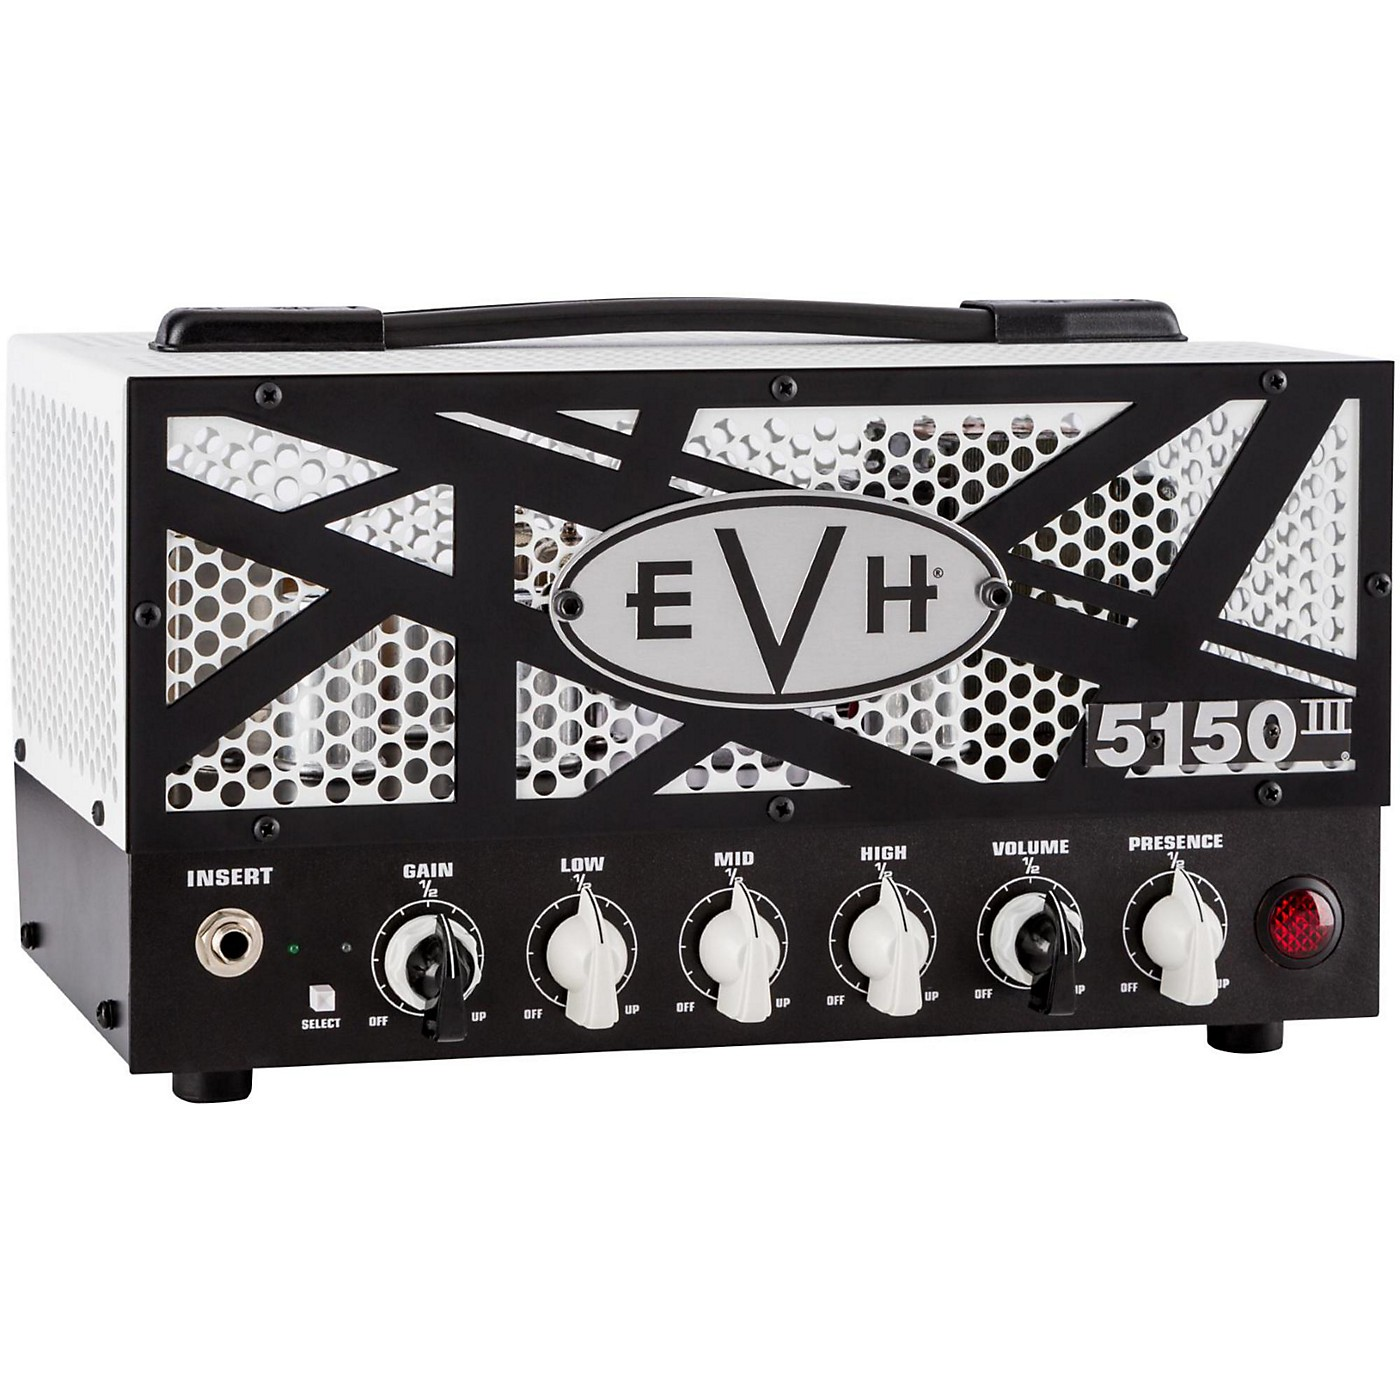 EVH 5150 III LBXII 15W Tube Guitar Amp Head thumbnail